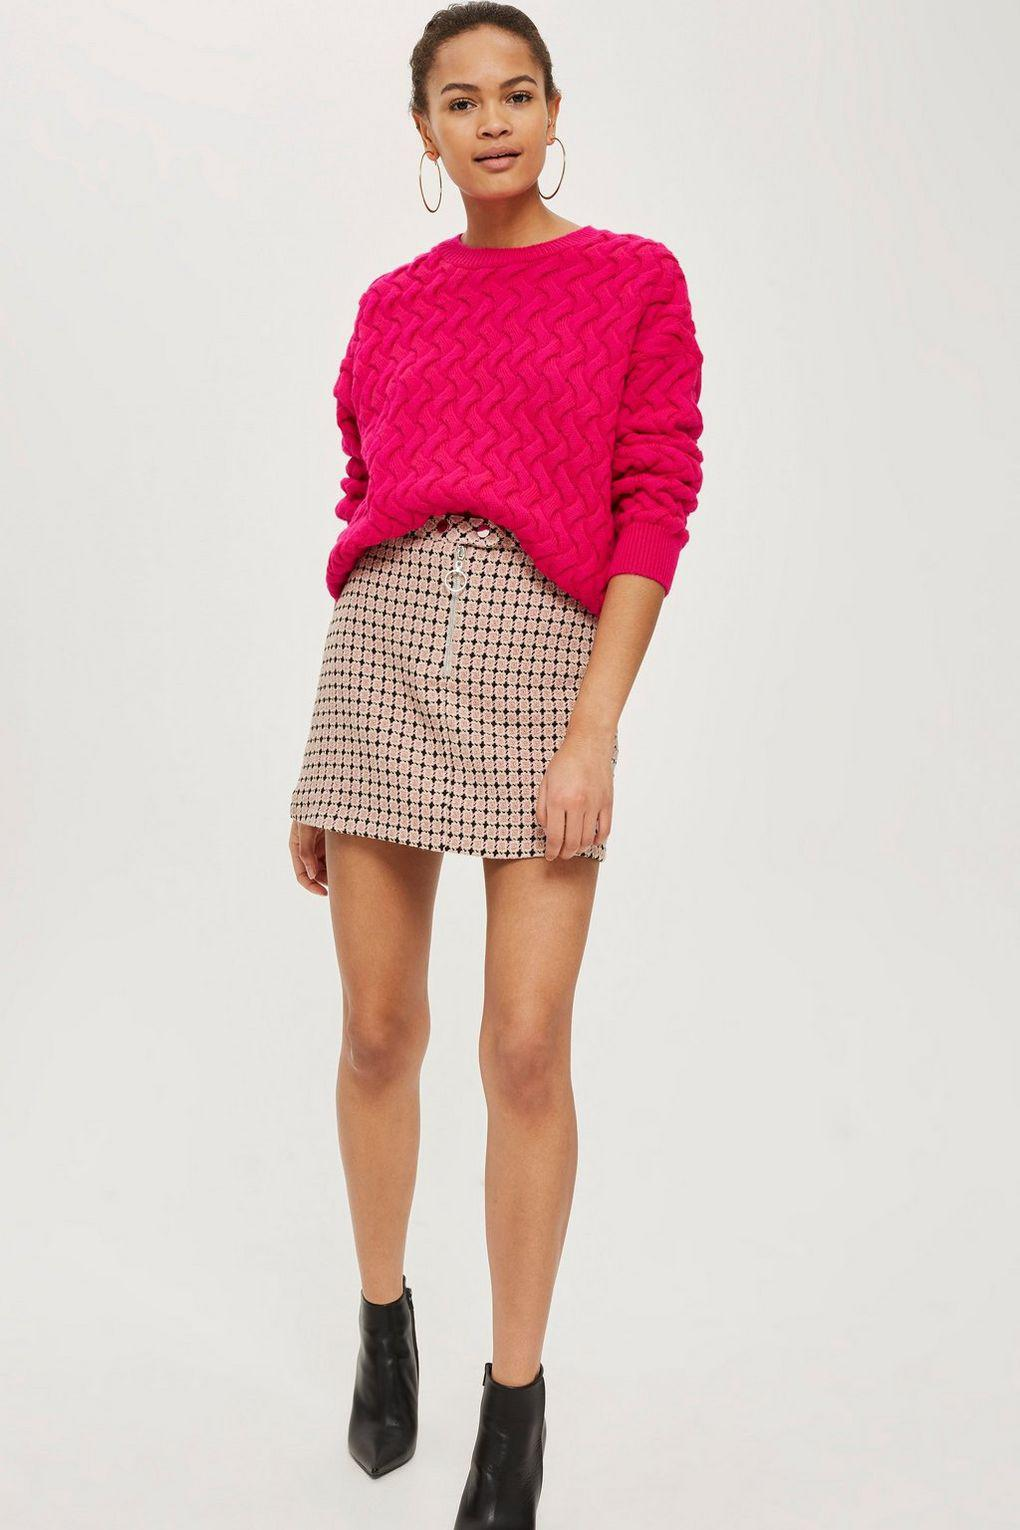 Topshop Womens Pretty Geometric Print Jacquard Mini Skirt - Outlet Pay With Visa Unisex Quality Outlet Store nF9Fkm